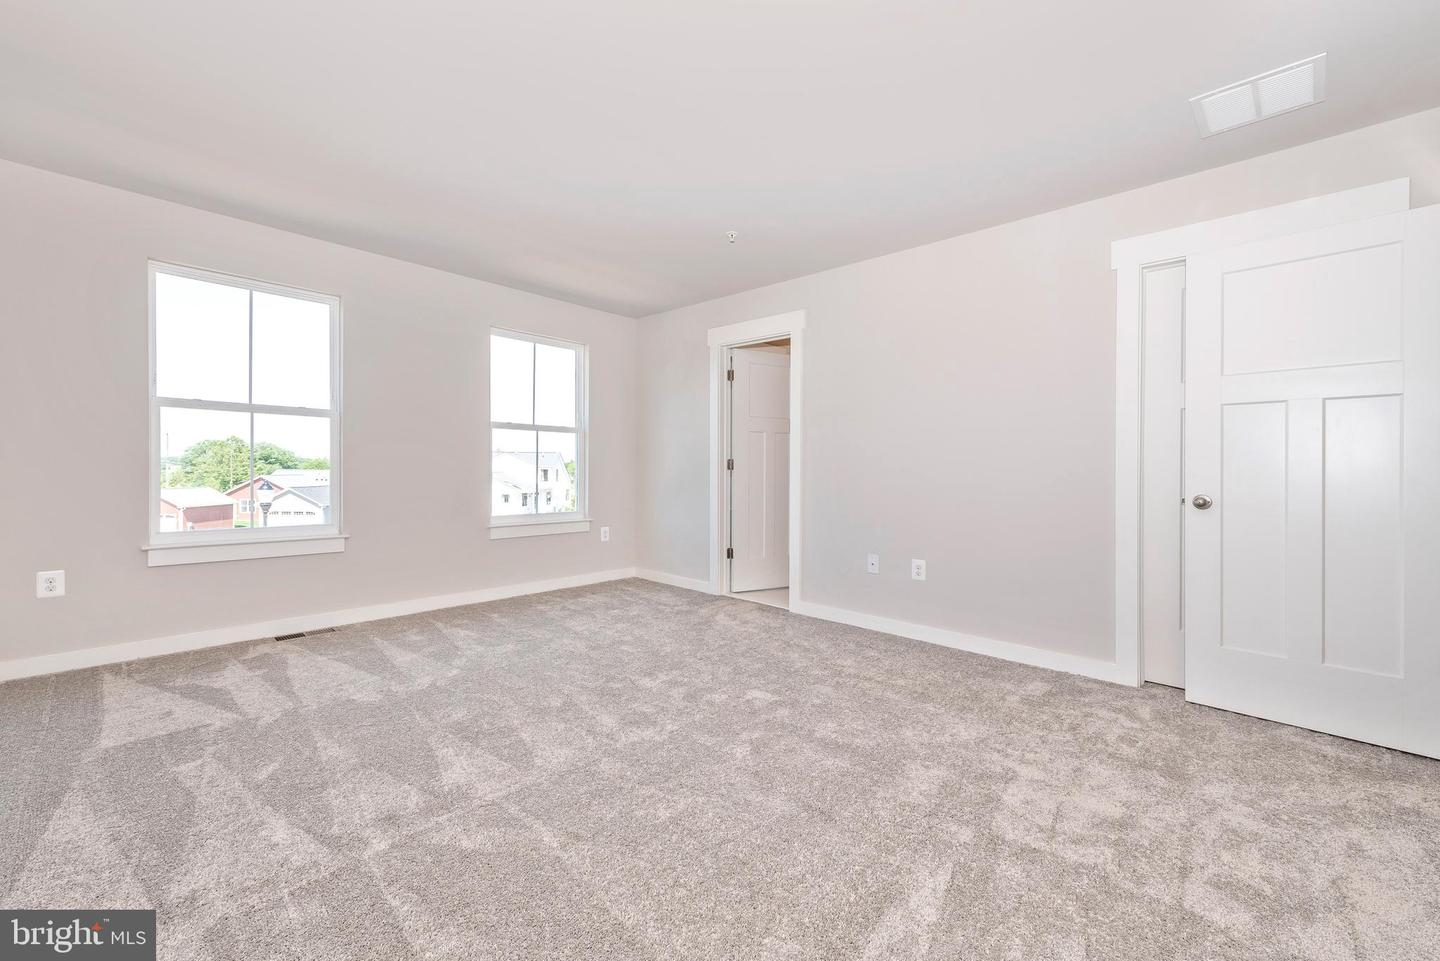 Additional photo for property listing at 1304 Sandoval Ct Frederick, Maryland 21702 United States